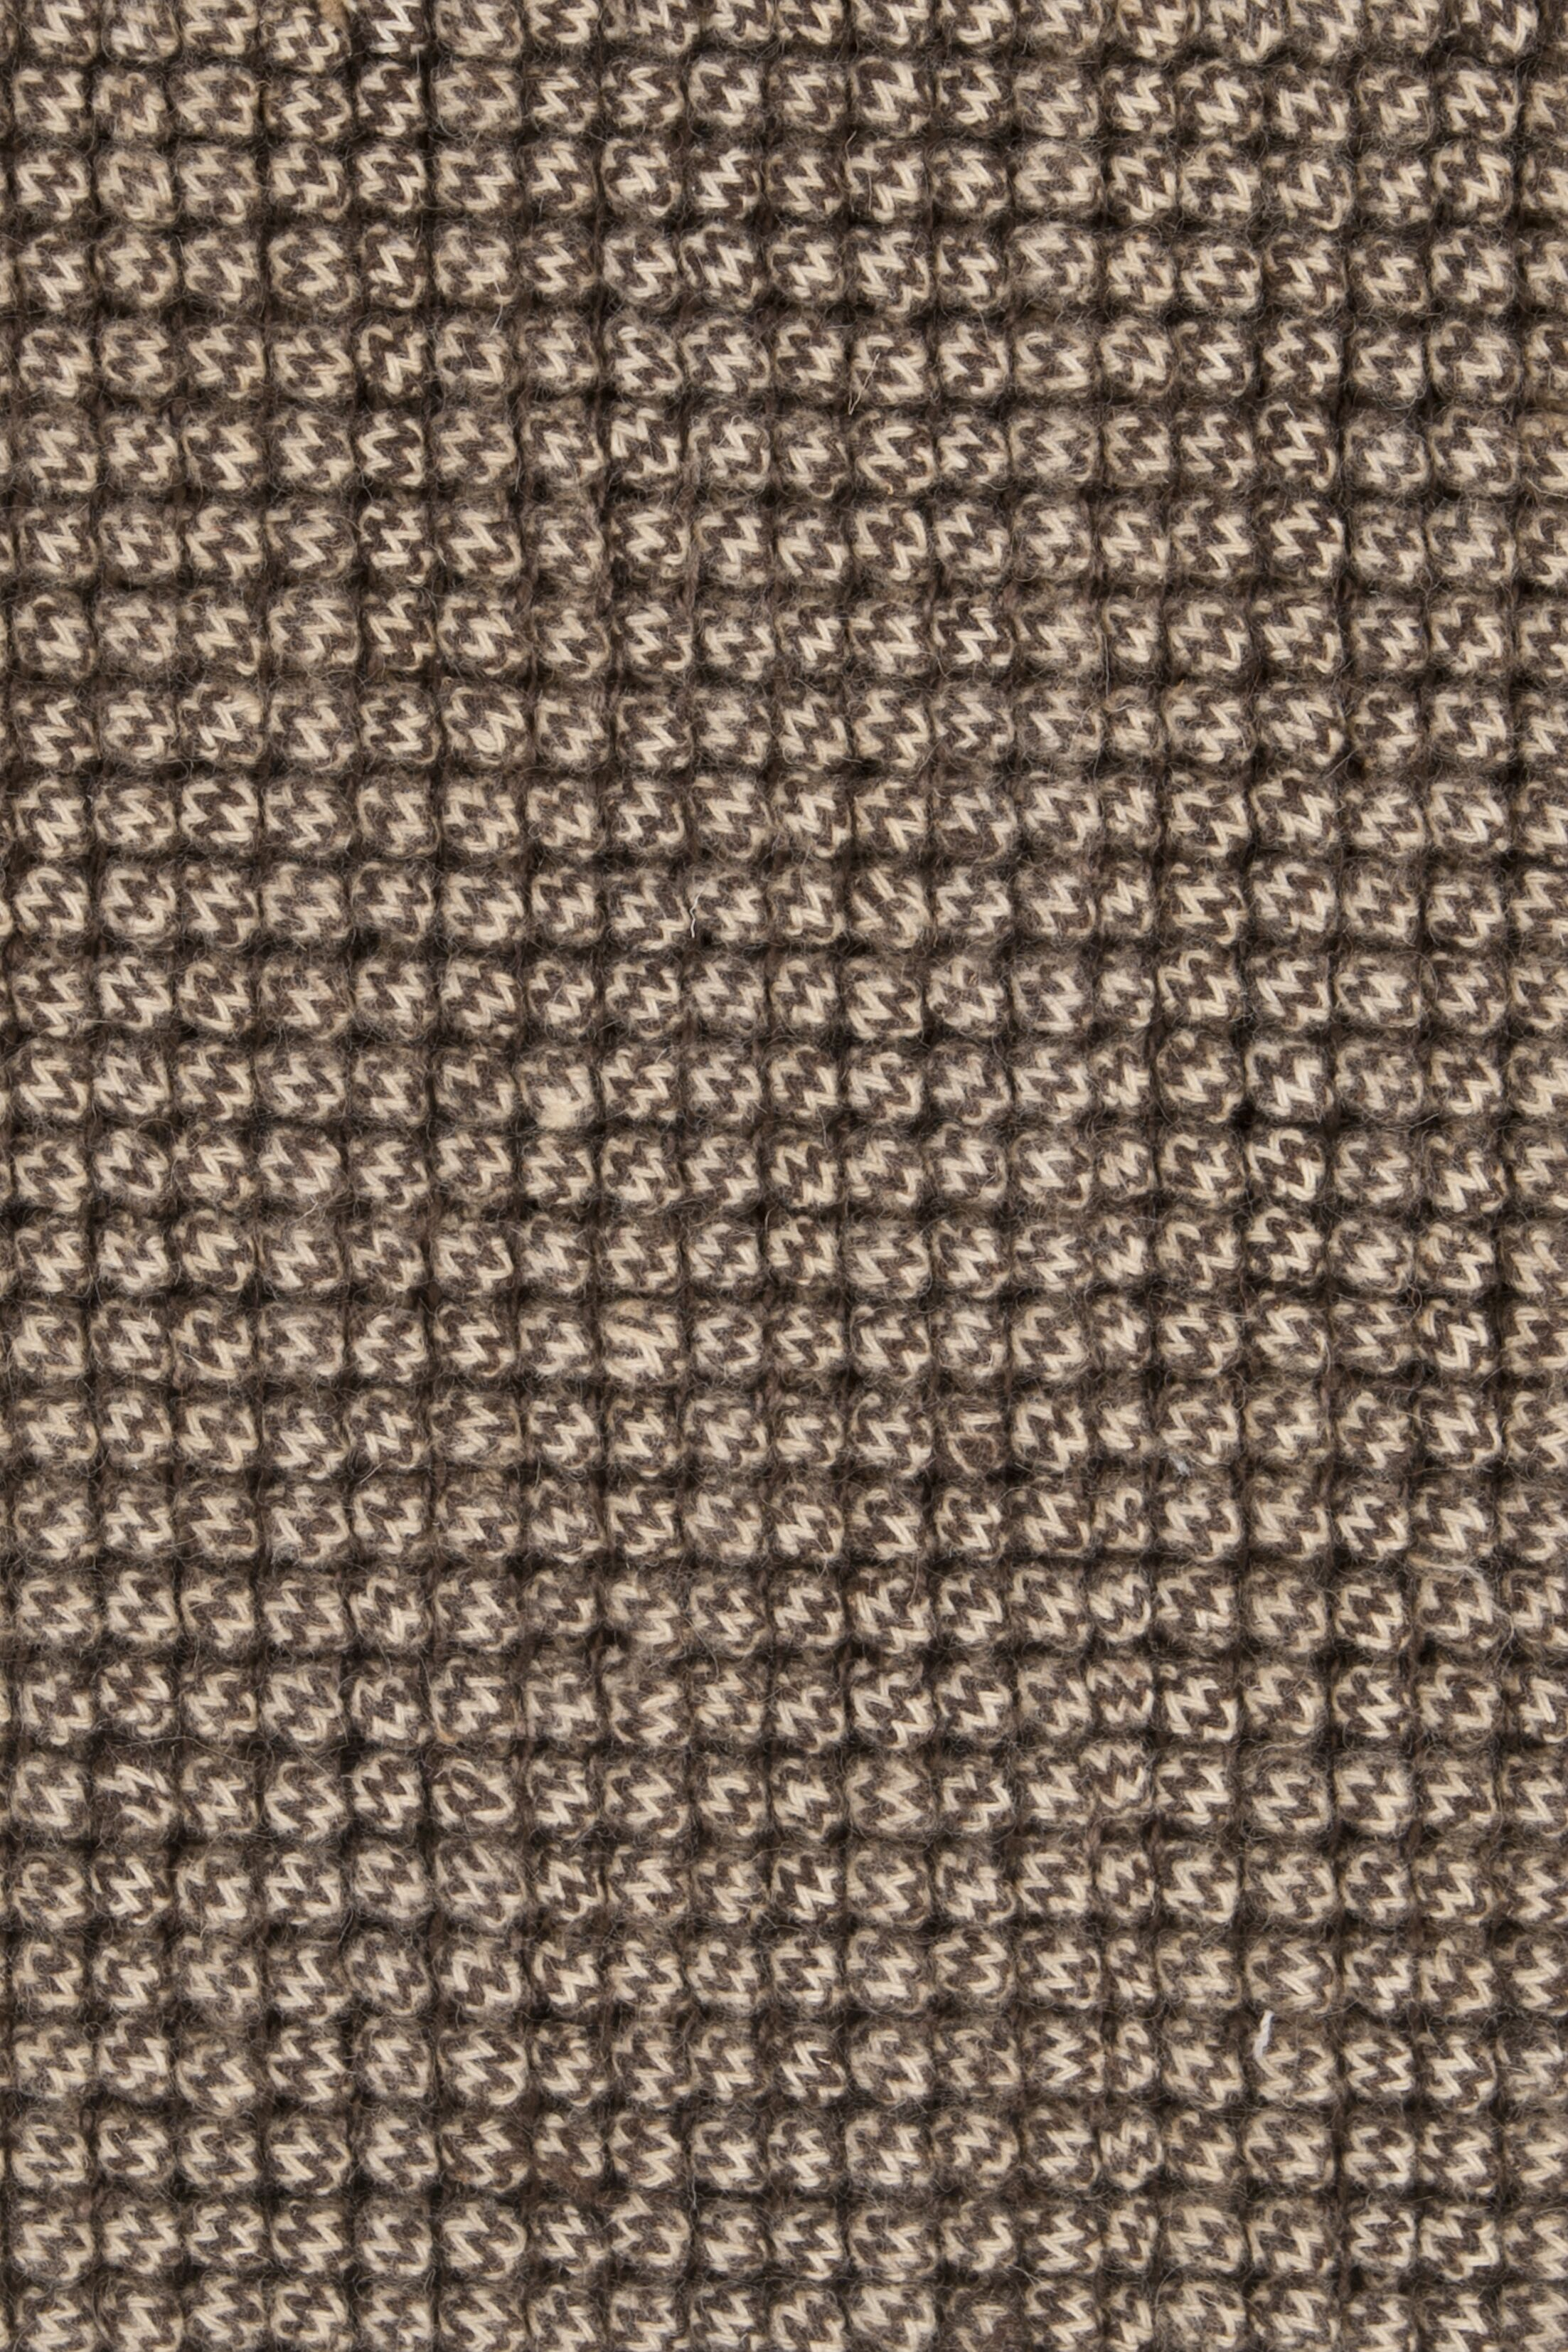 Gilles Hand-Woven Brown Area Rug Rug Size: Rectangle 8' x 11'